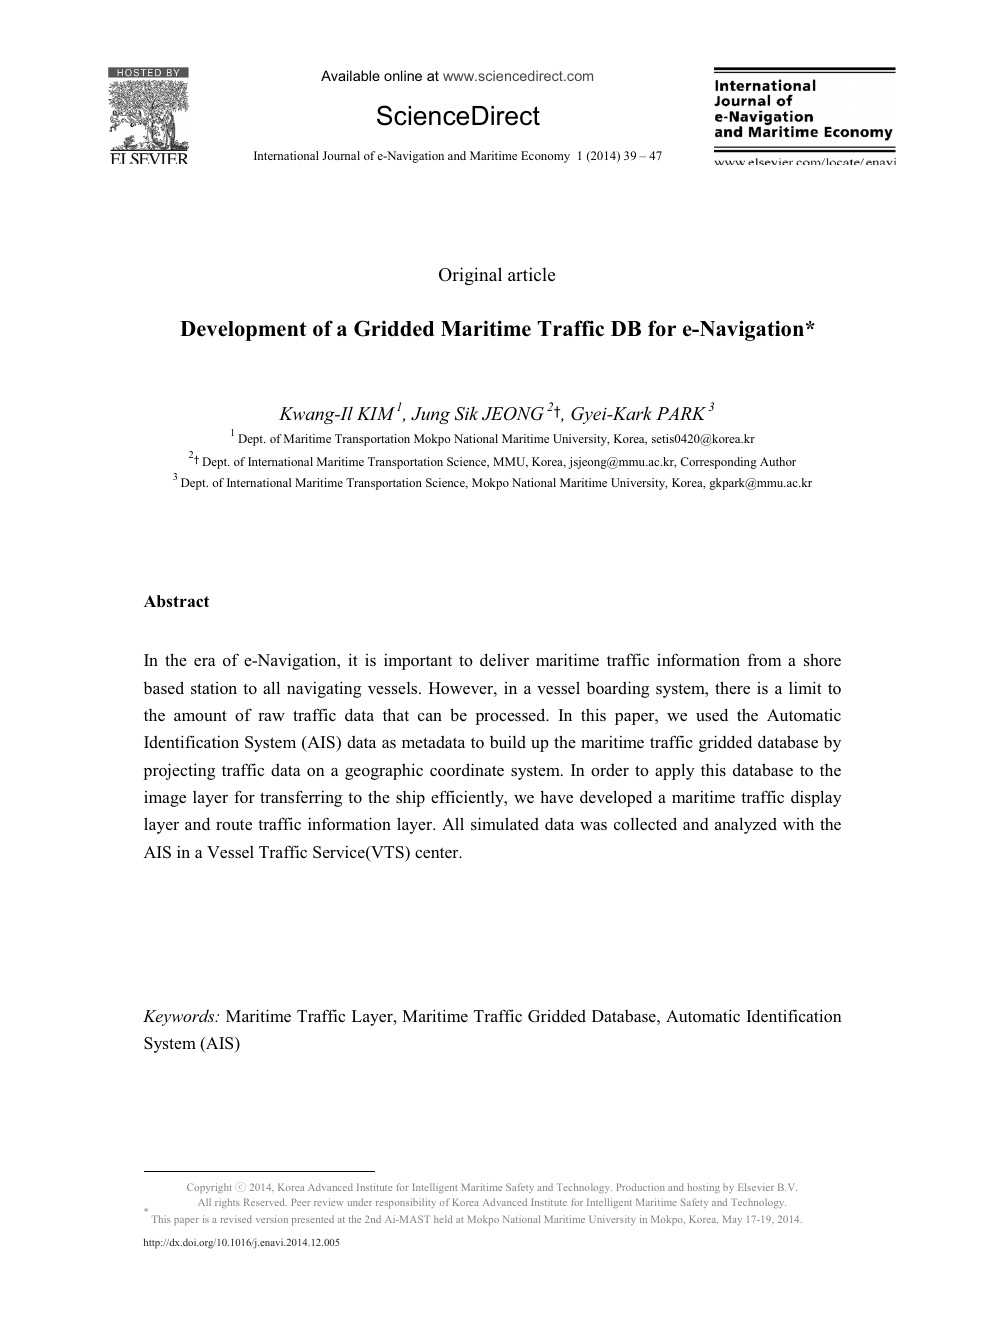 Development of a Gridded Maritime Traffic DB for e-Navigation1